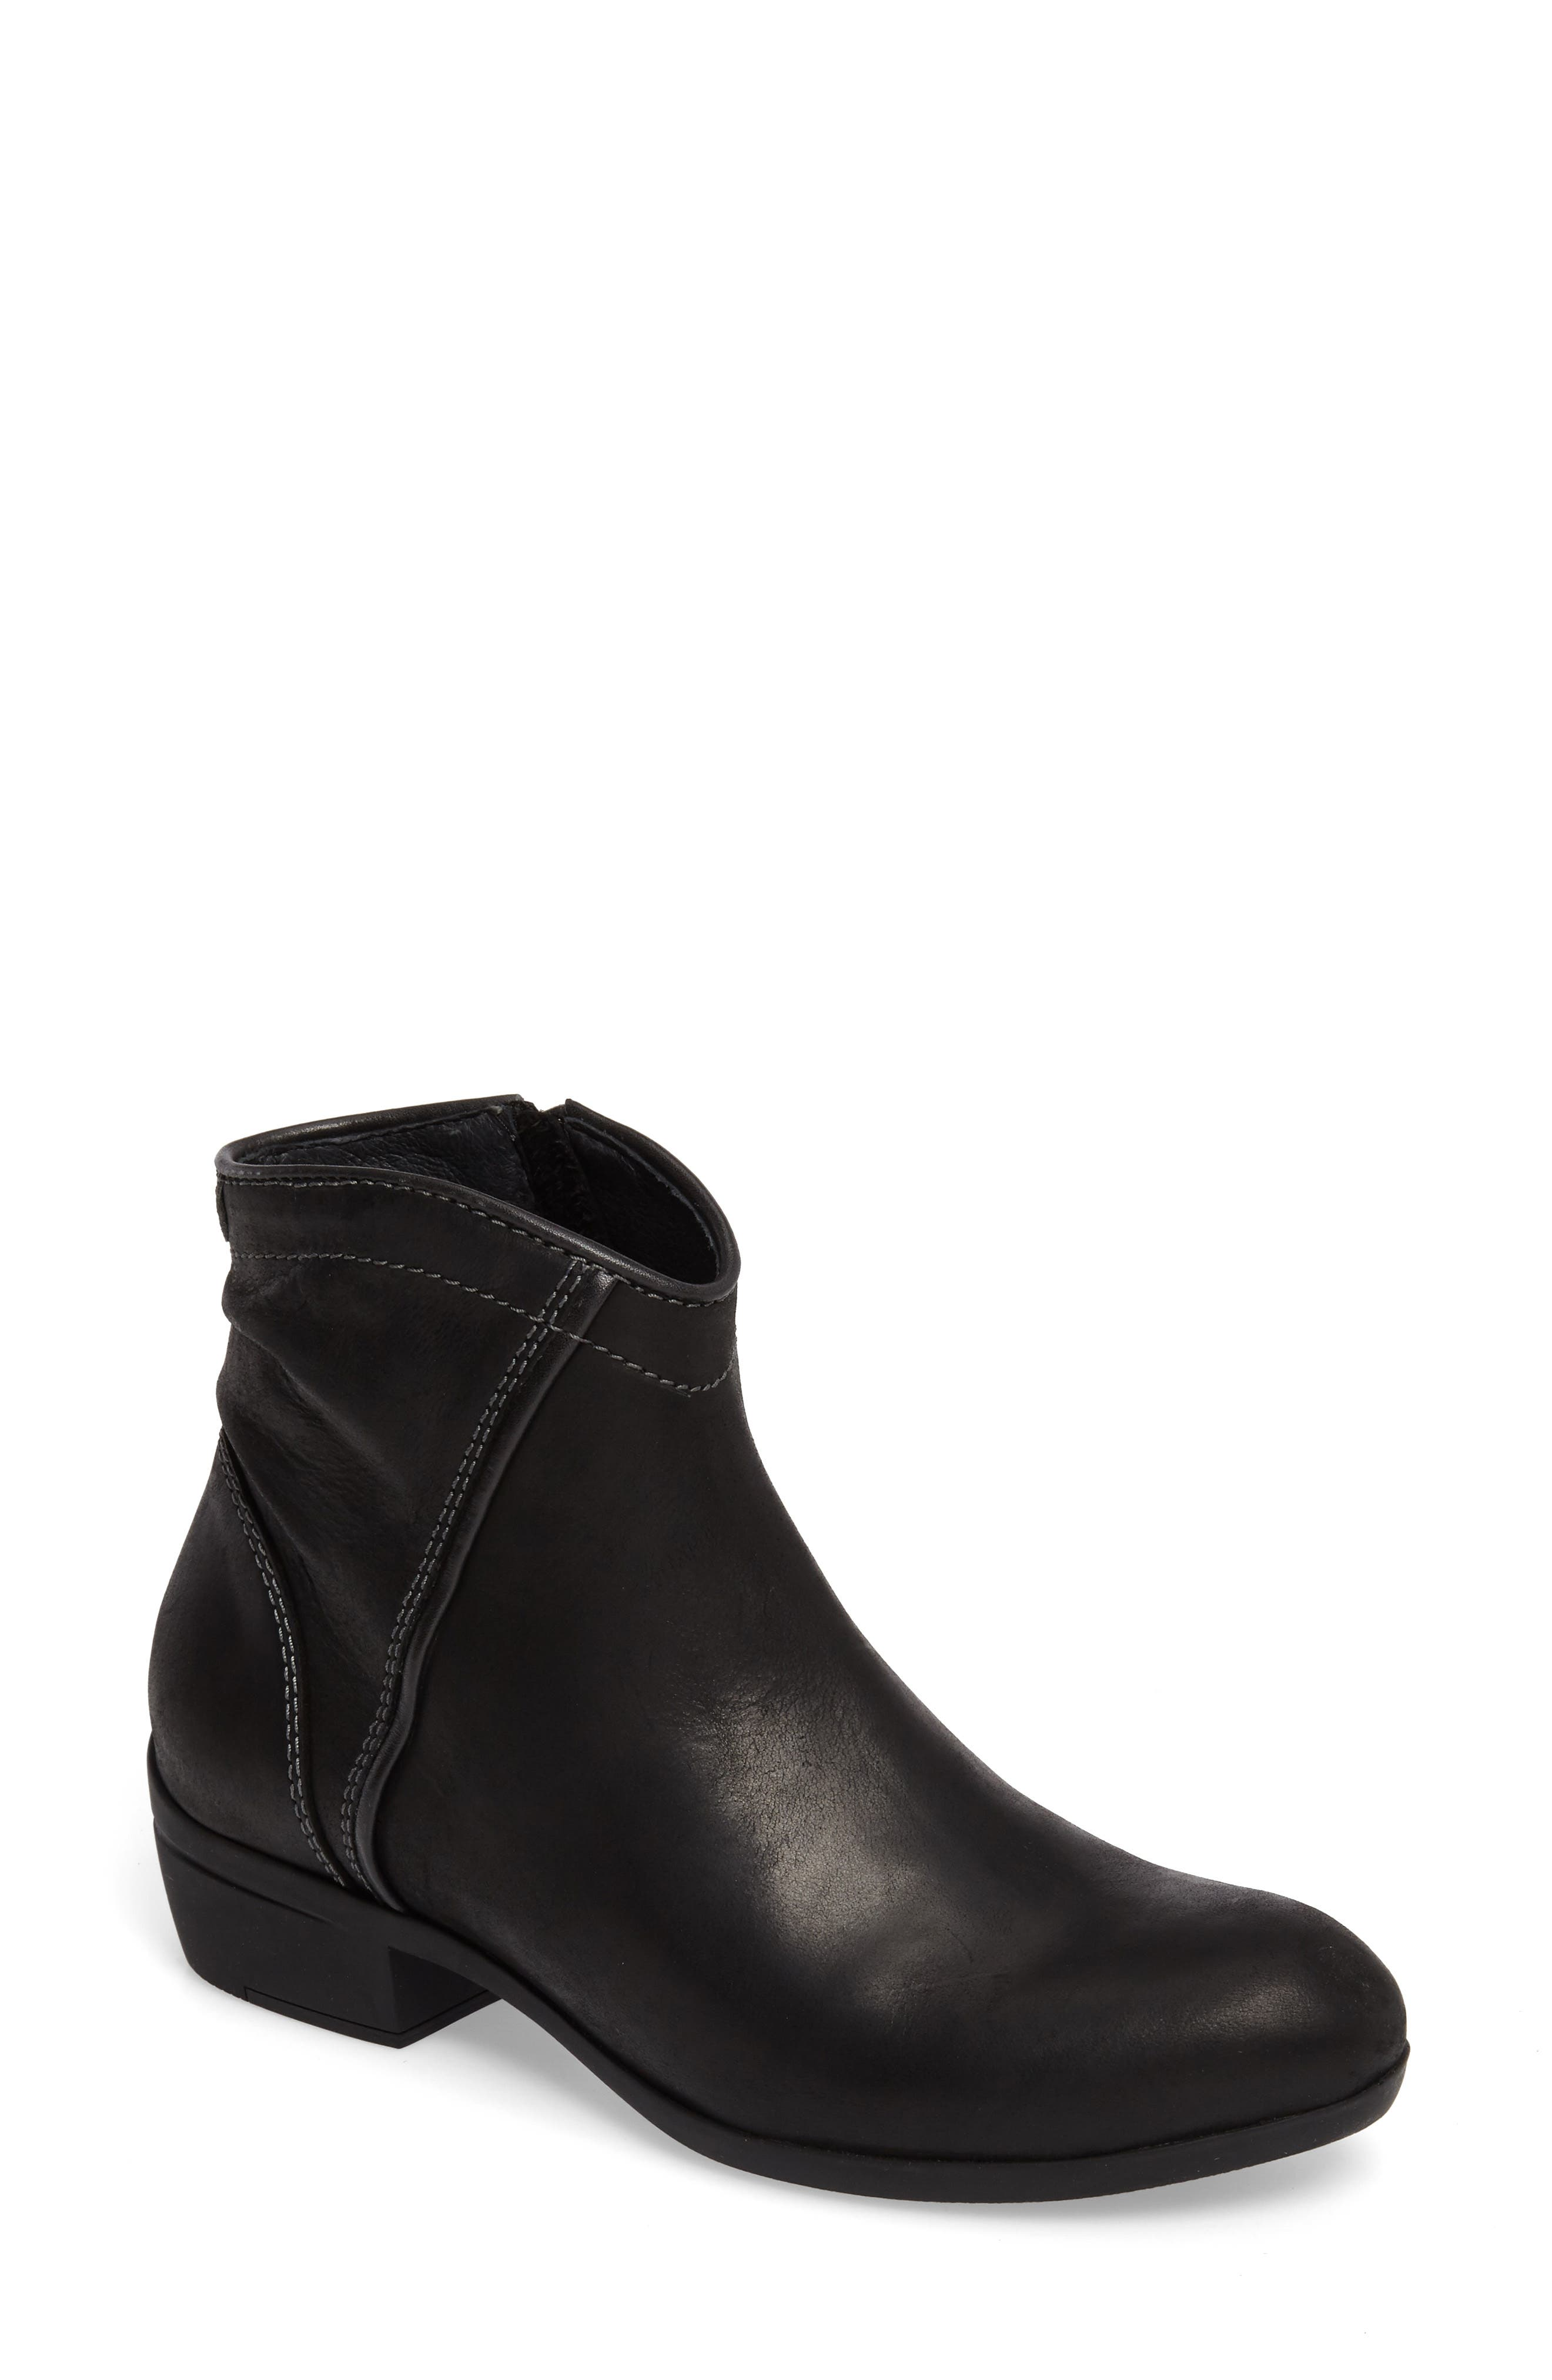 Winchester Bootie,                         Main,                         color, 001